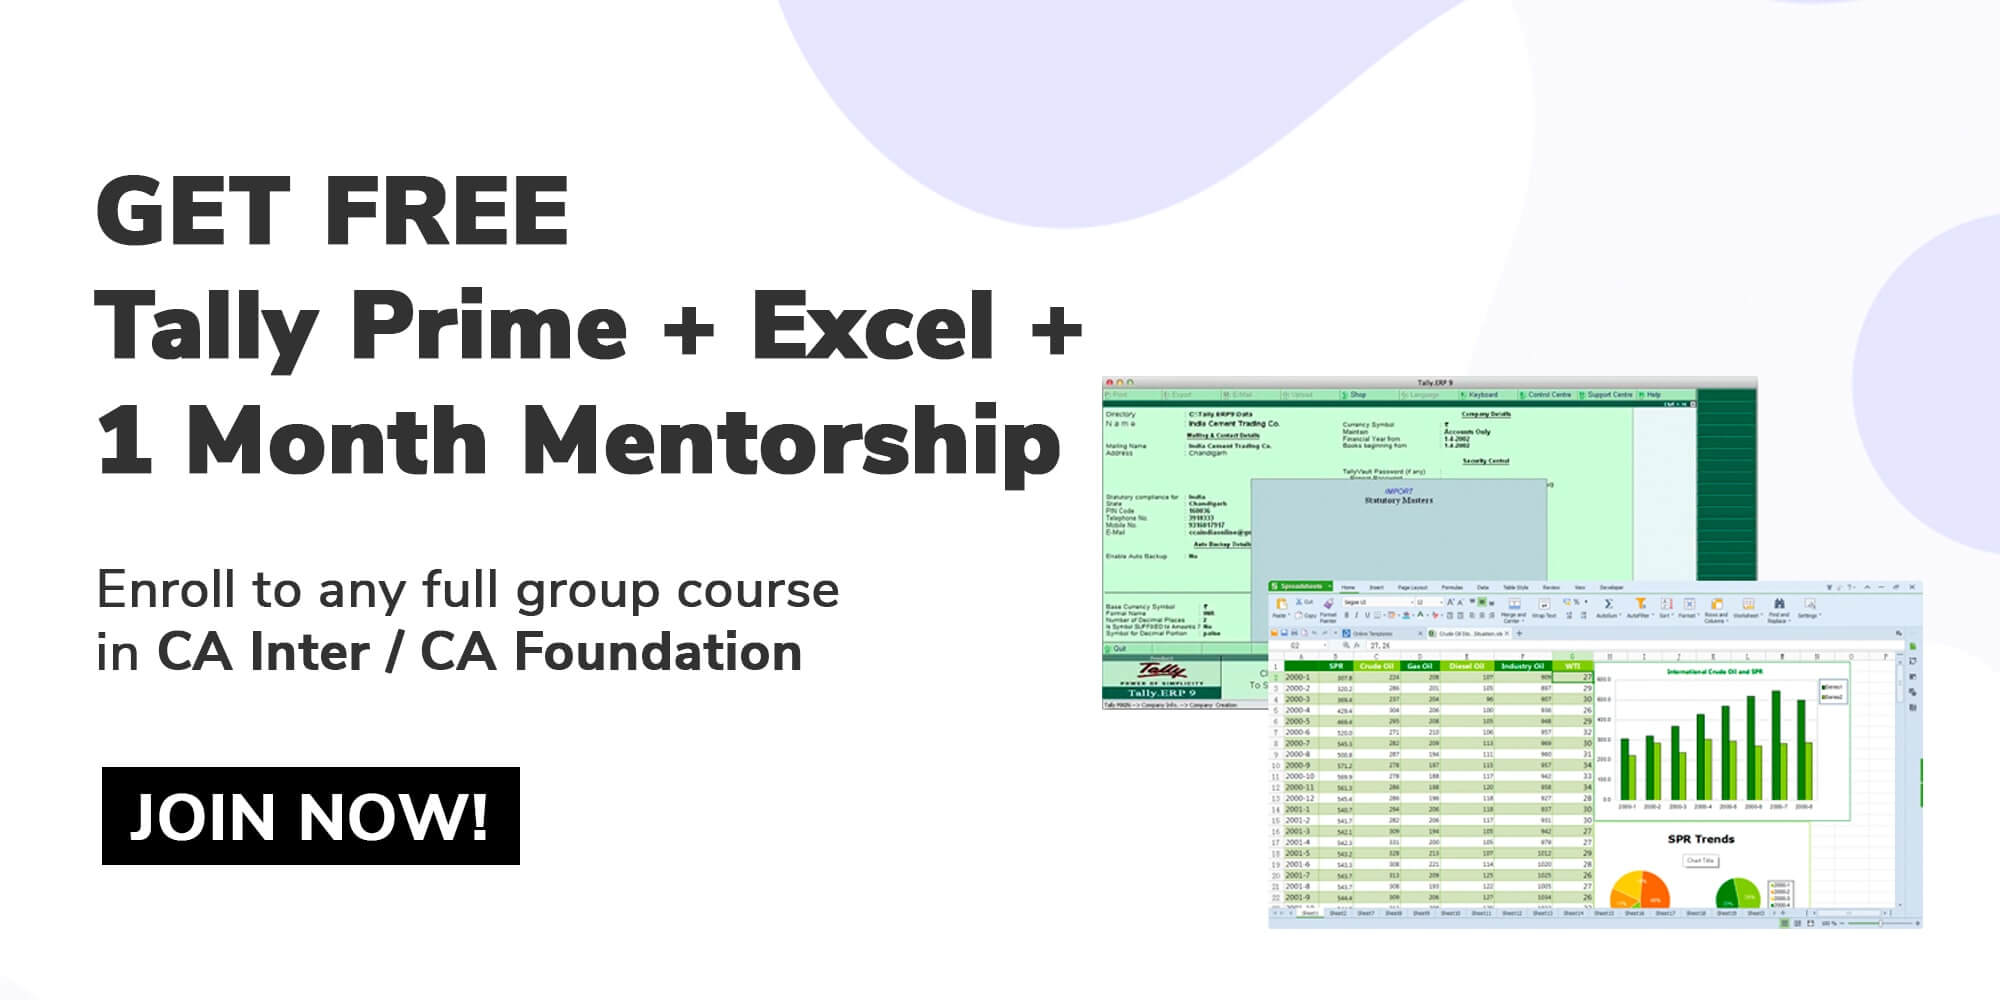 Tally + Excel Free